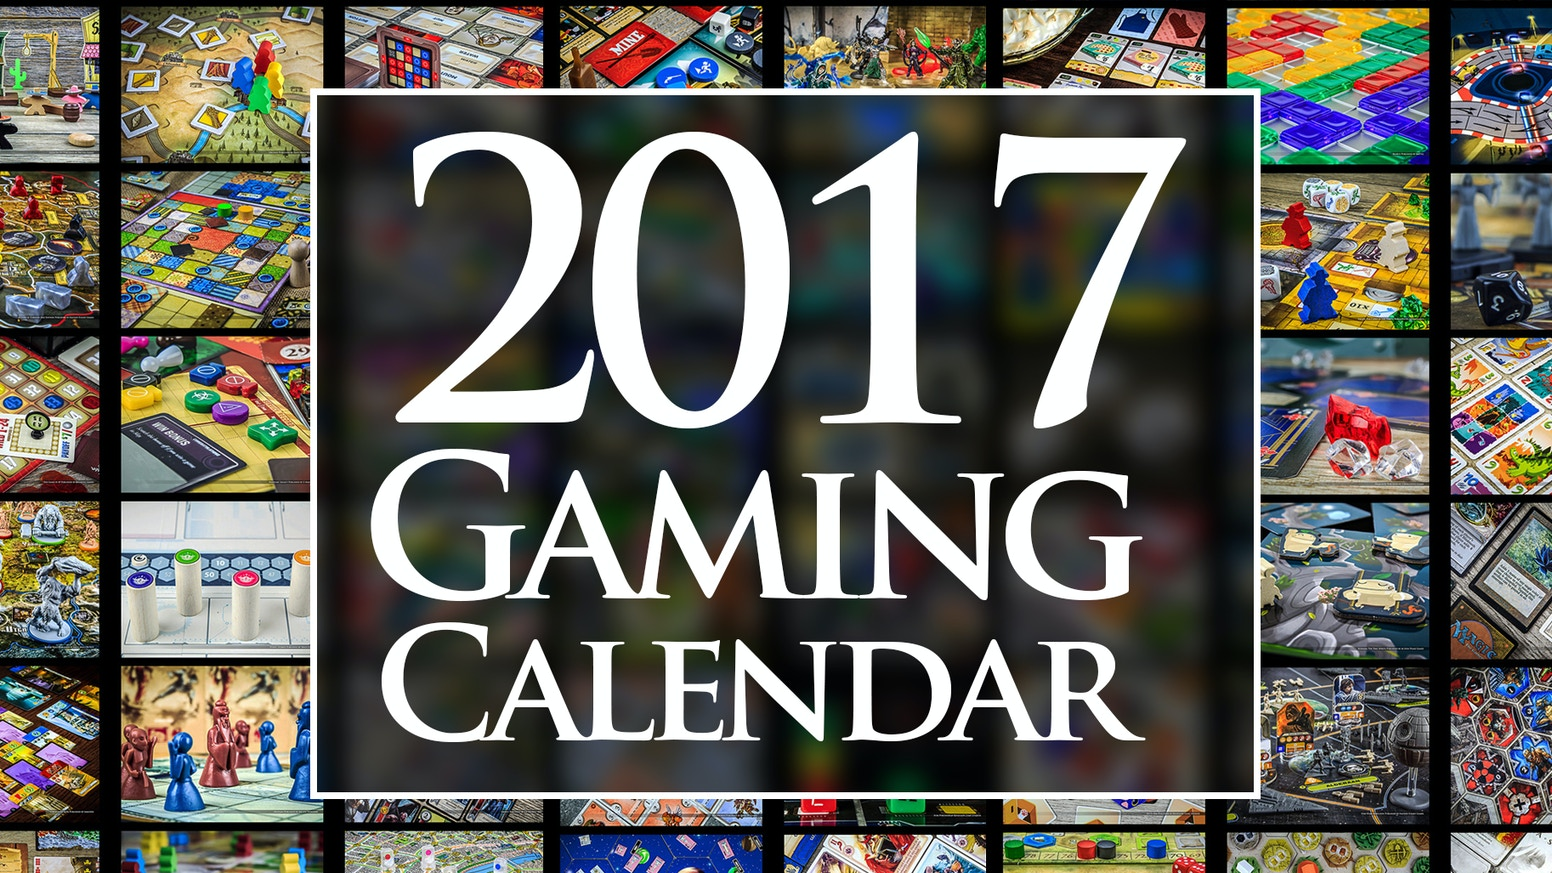 A 2017 Calendar featuring some of the coolest and prettiest board games of all time.